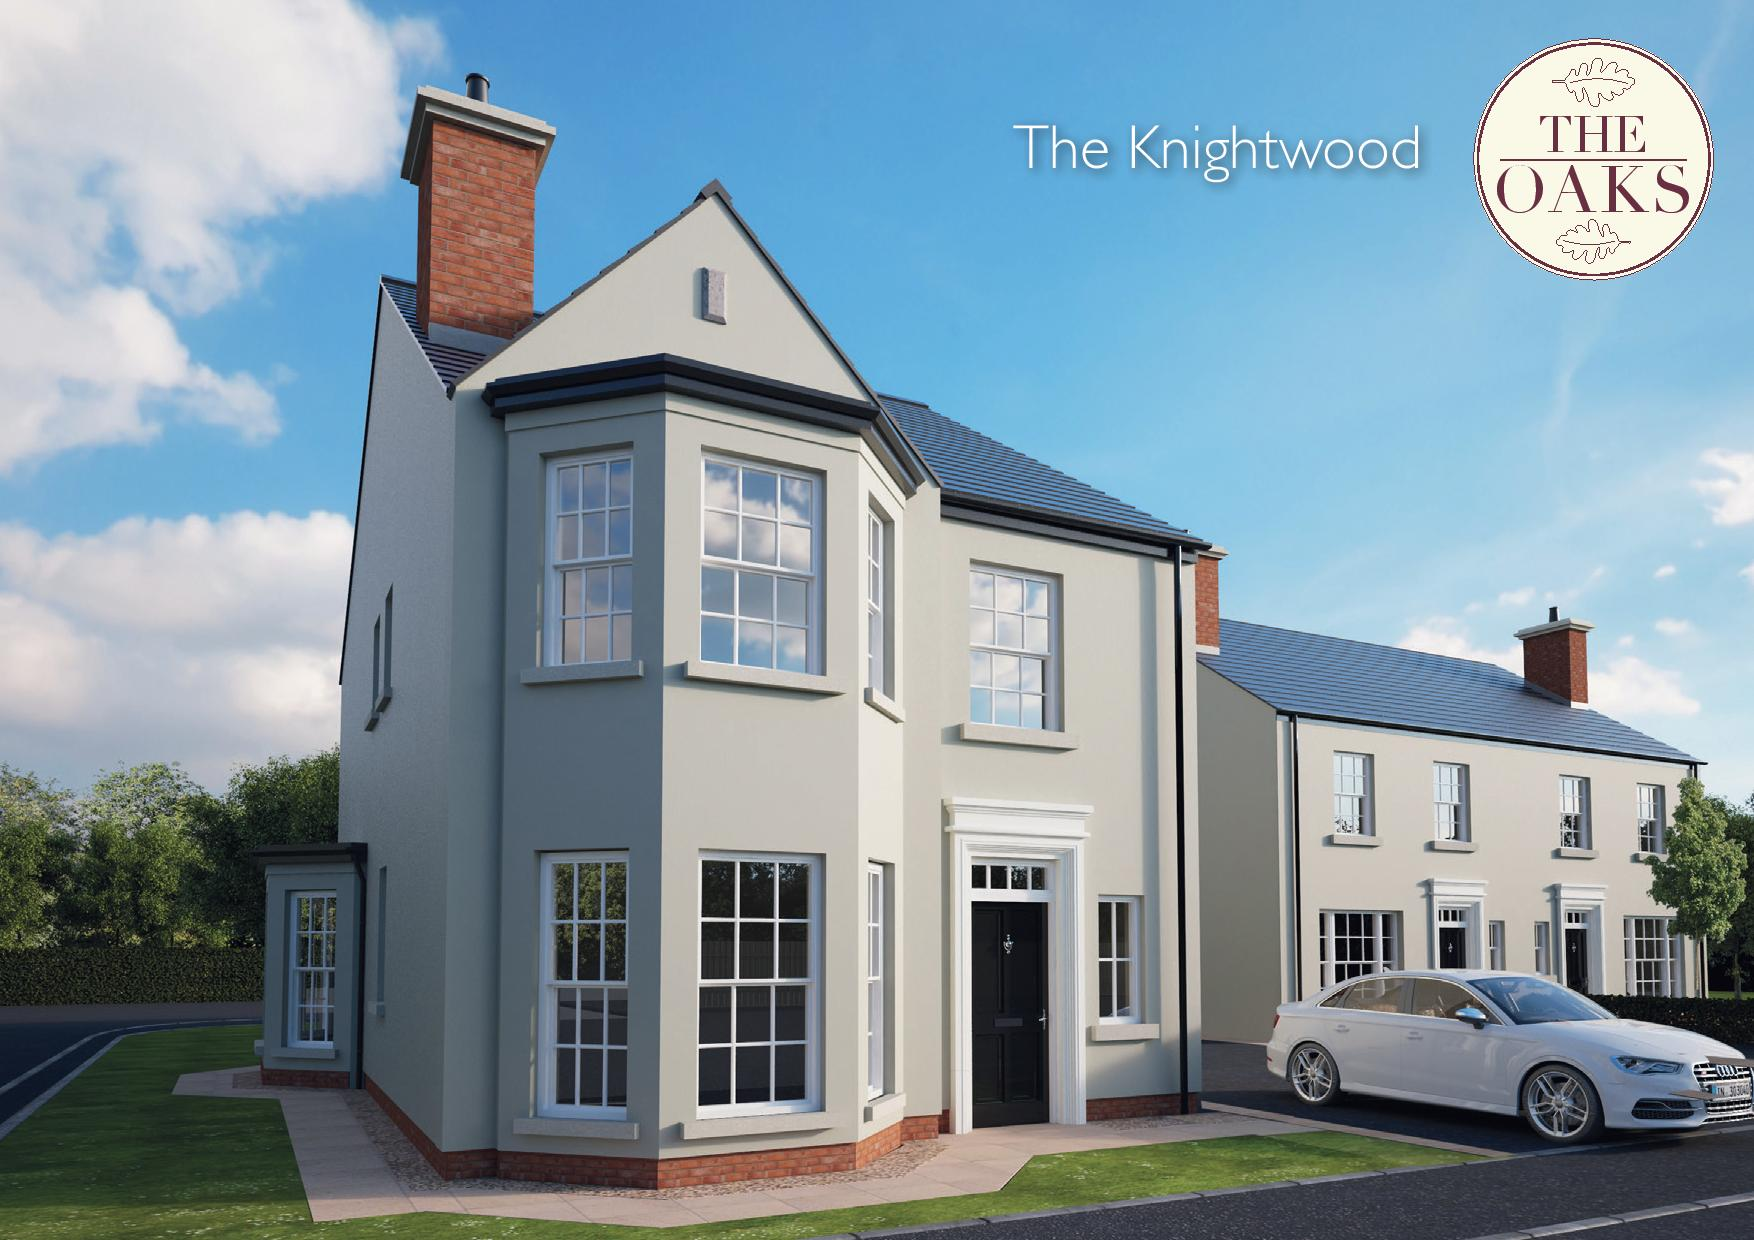 The Knightwood